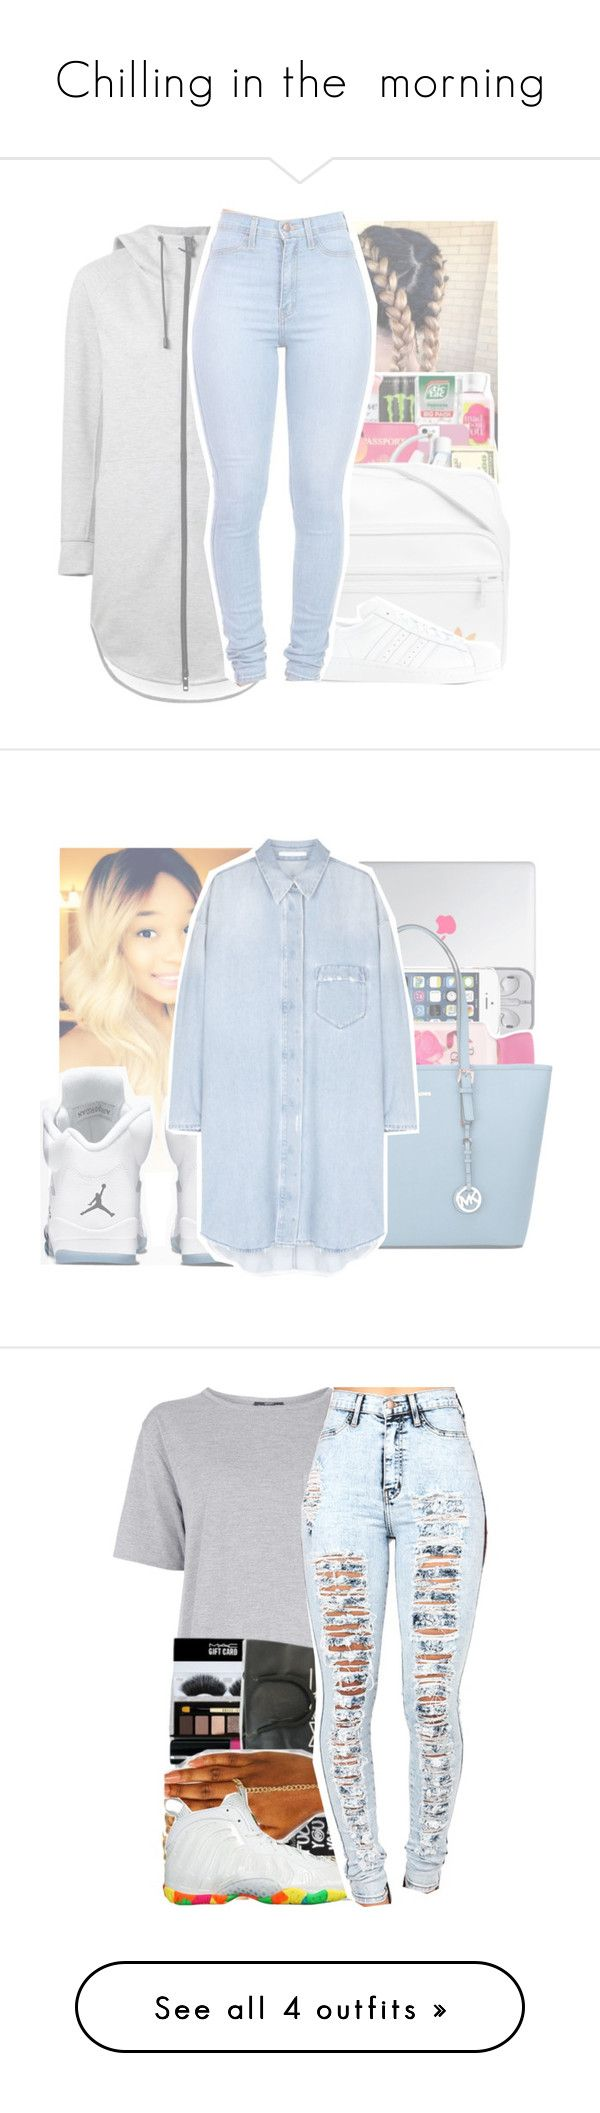 """""""Chilling in the  morning"""" by queen-dope ❤ liked on Polyvore featuring THE RERACS, adidas, women's clothing, women's fashion, women, female, woman, misses, juniors and MICHAEL Michael Kors"""